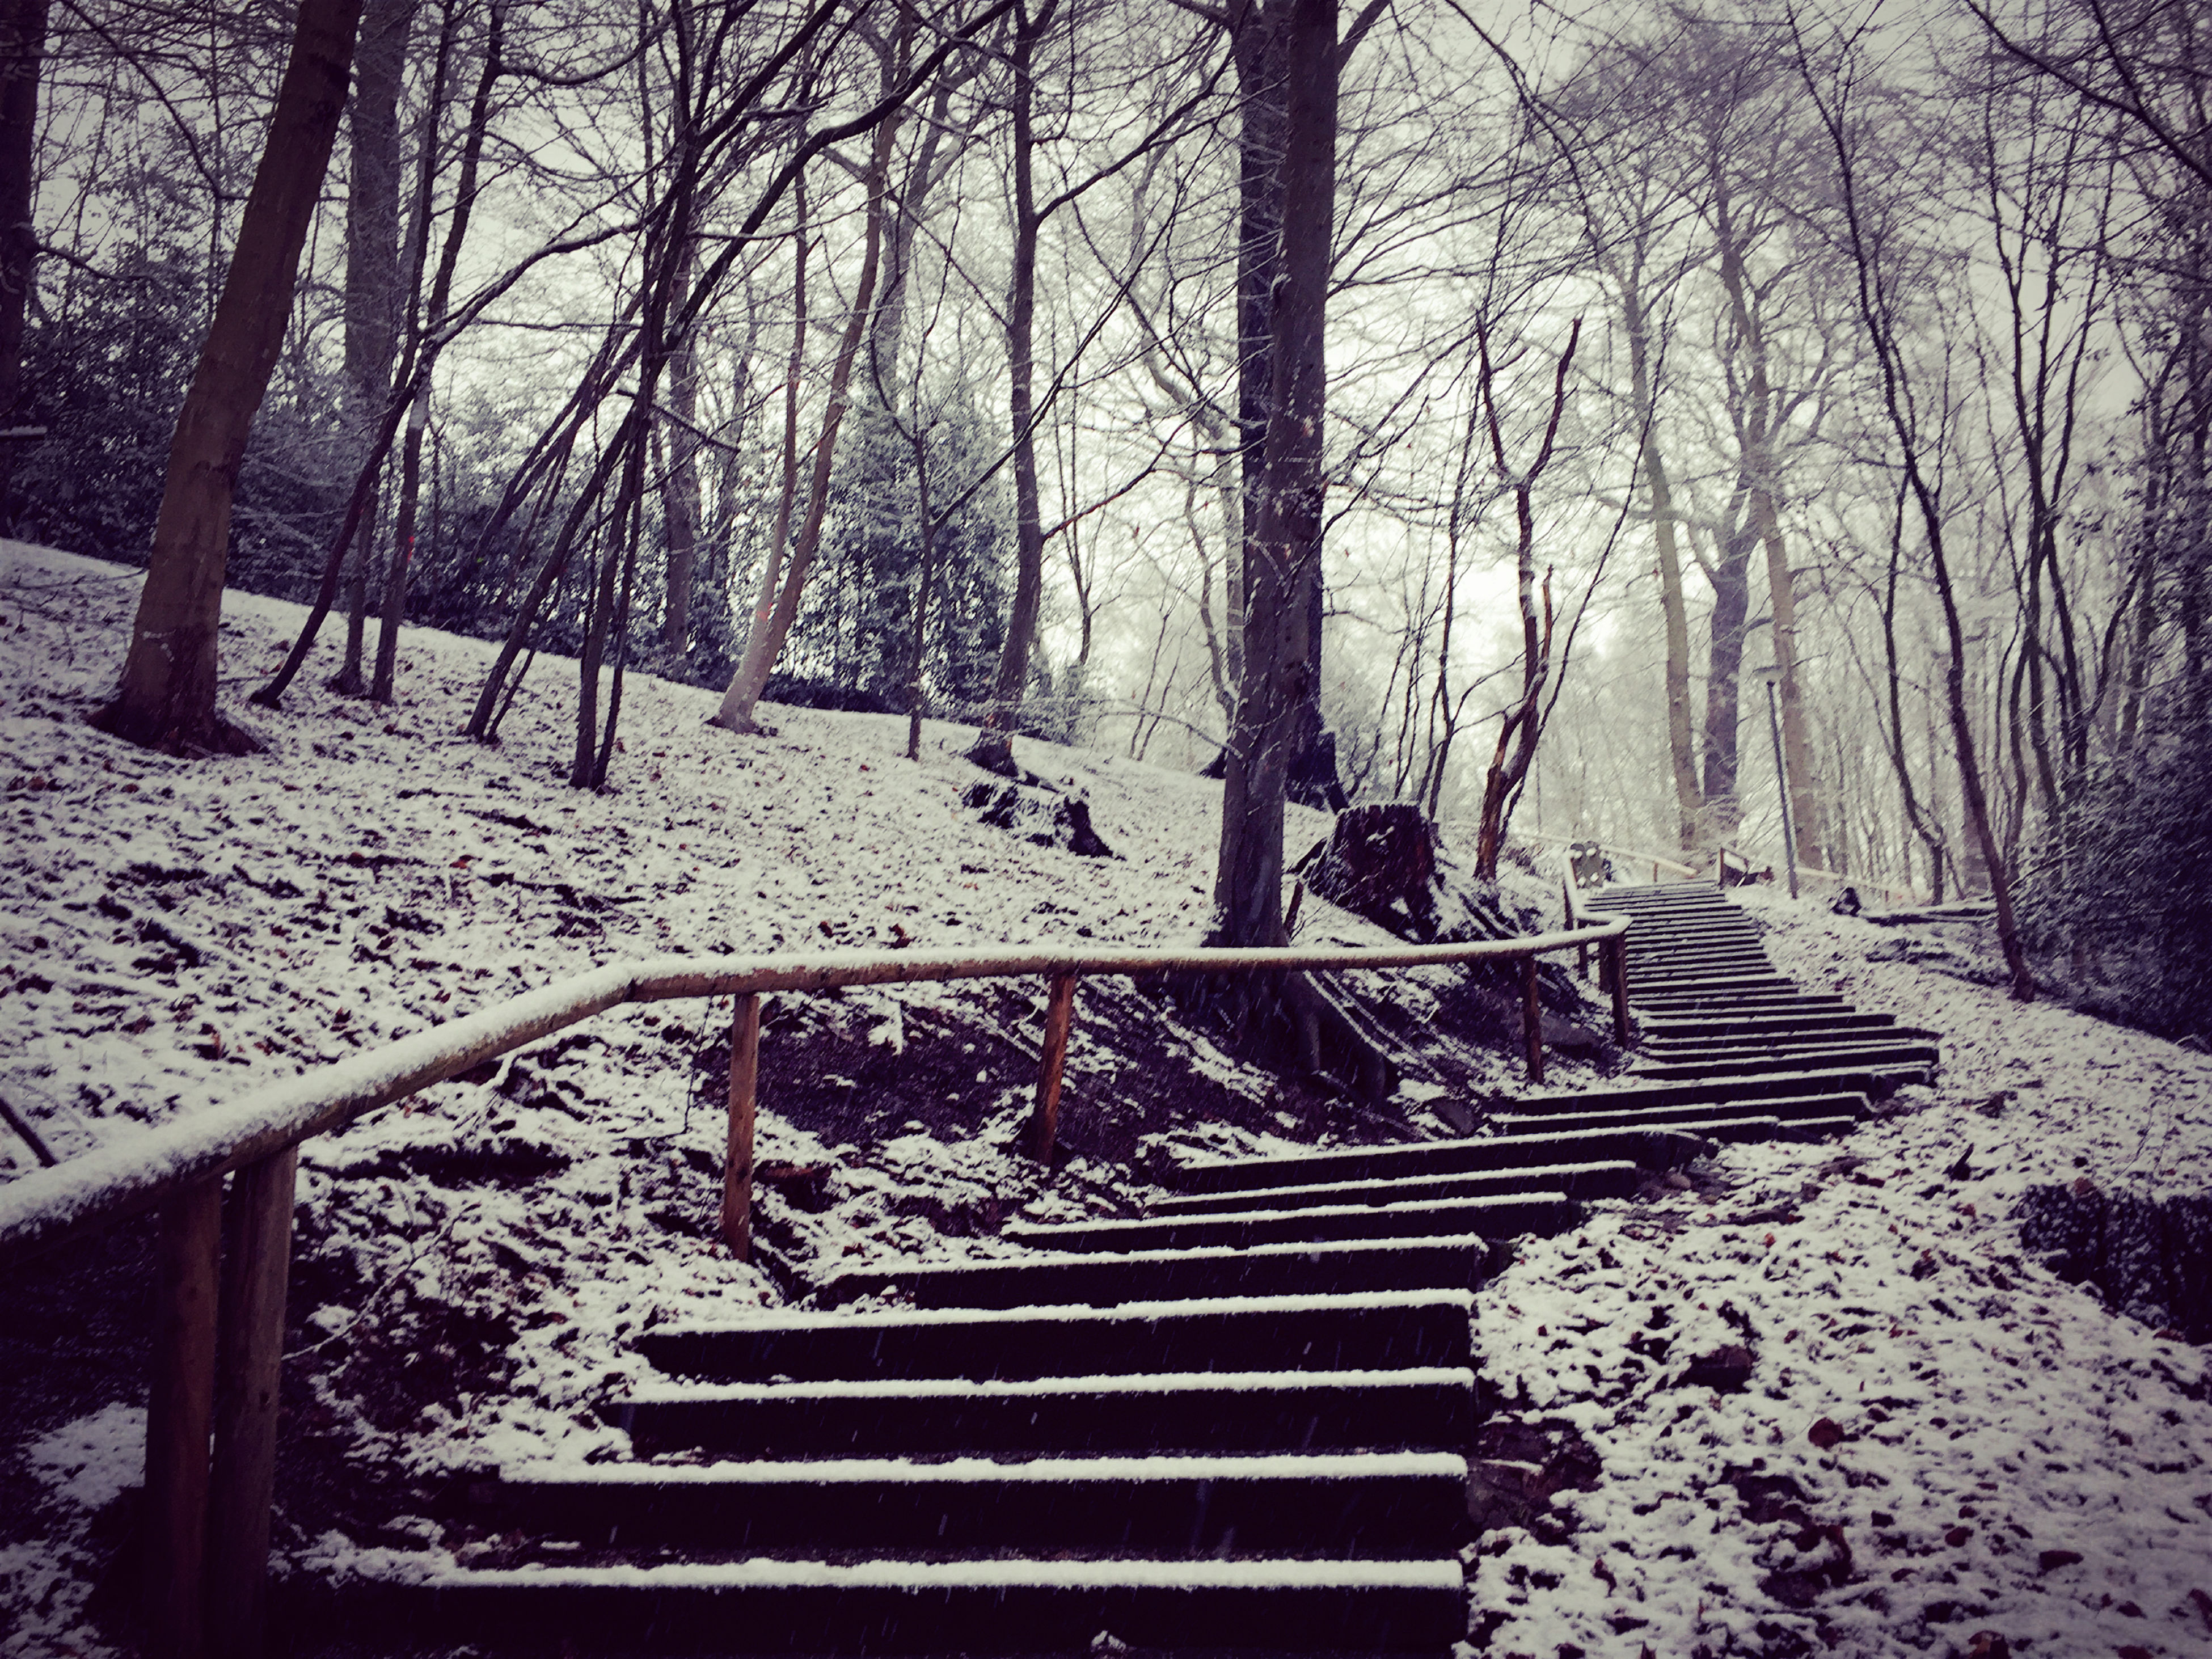 tree, snow, winter, season, cold temperature, bare tree, tranquility, nature, the way forward, railing, bench, tranquil scene, empty, branch, covering, steps, absence, weather, beauty in nature, scenics